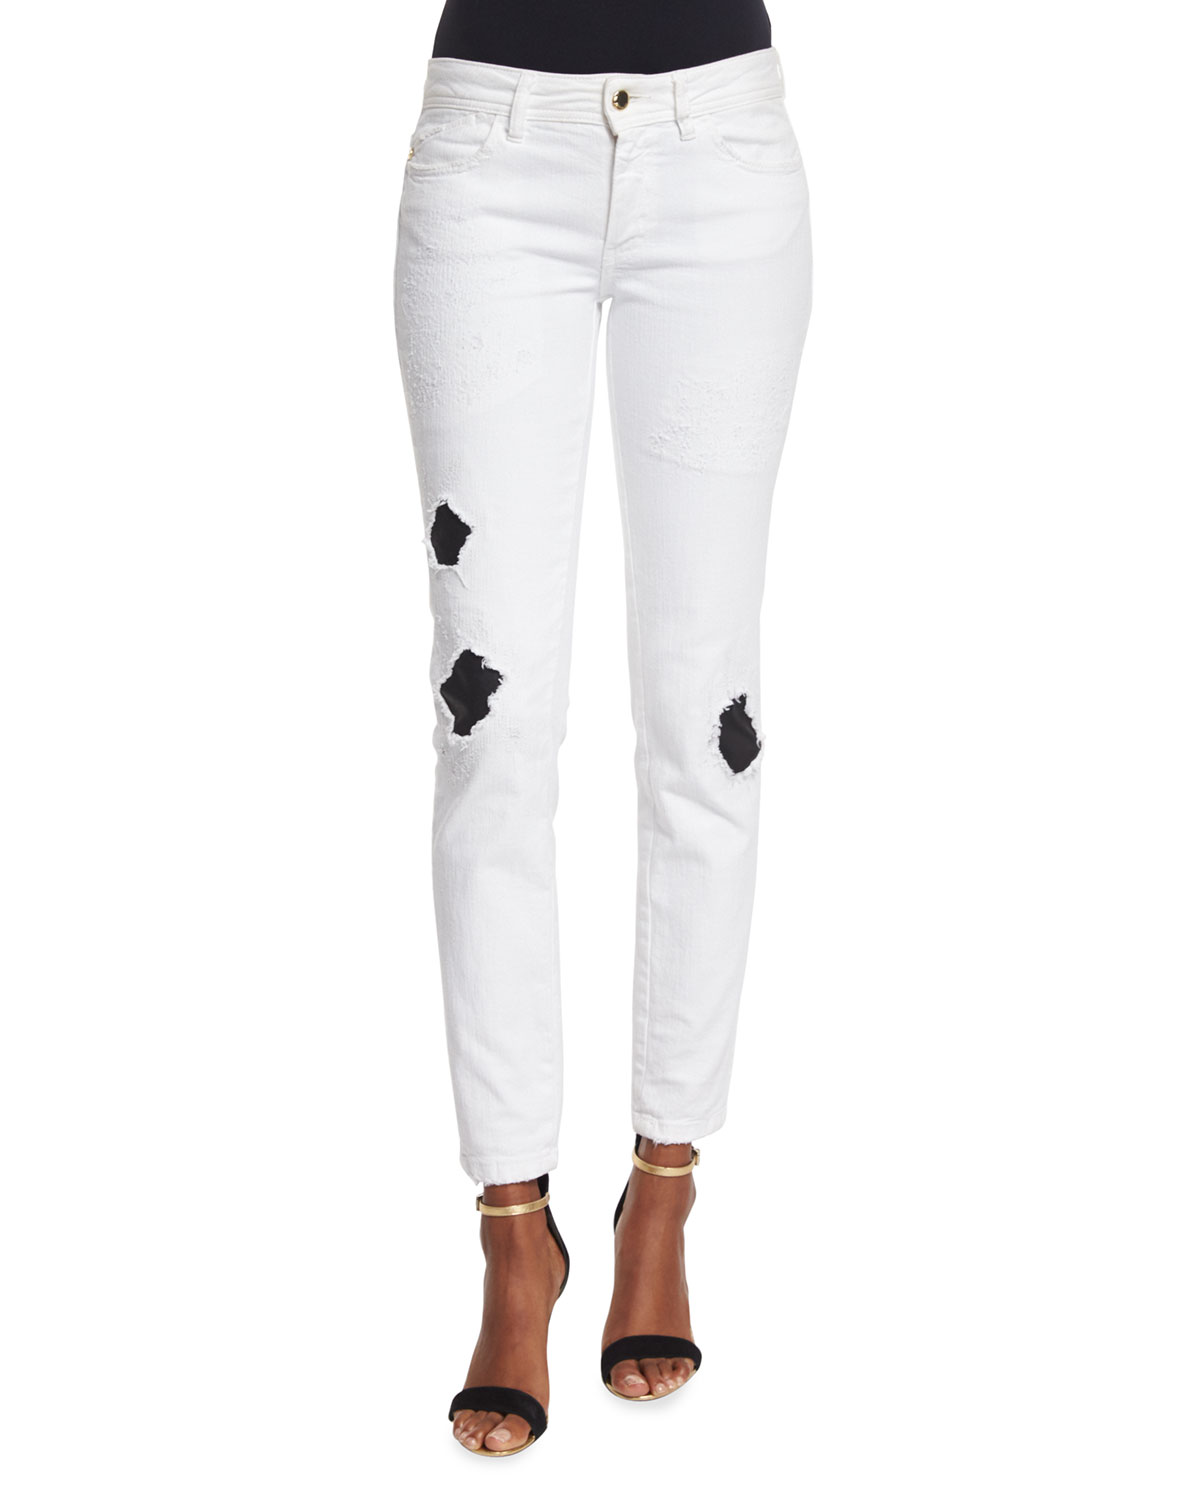 Ripped/Repaired Skinny Jeans, White